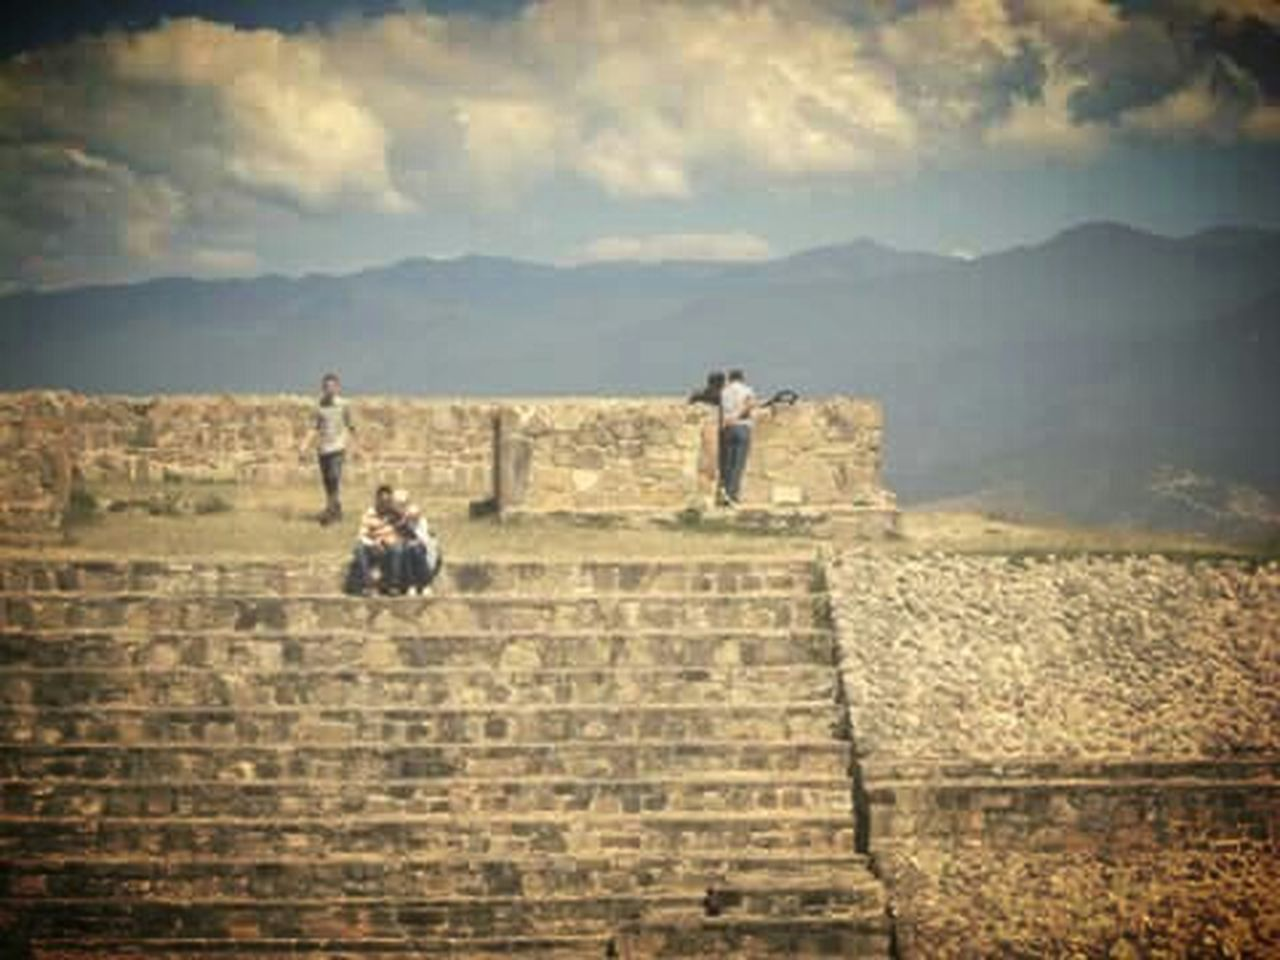 Monte Alban Travel Photography Capturing Freedom Traveling Mexico Oaxaca Arqueology Zona Arqueológica Monte Alban History